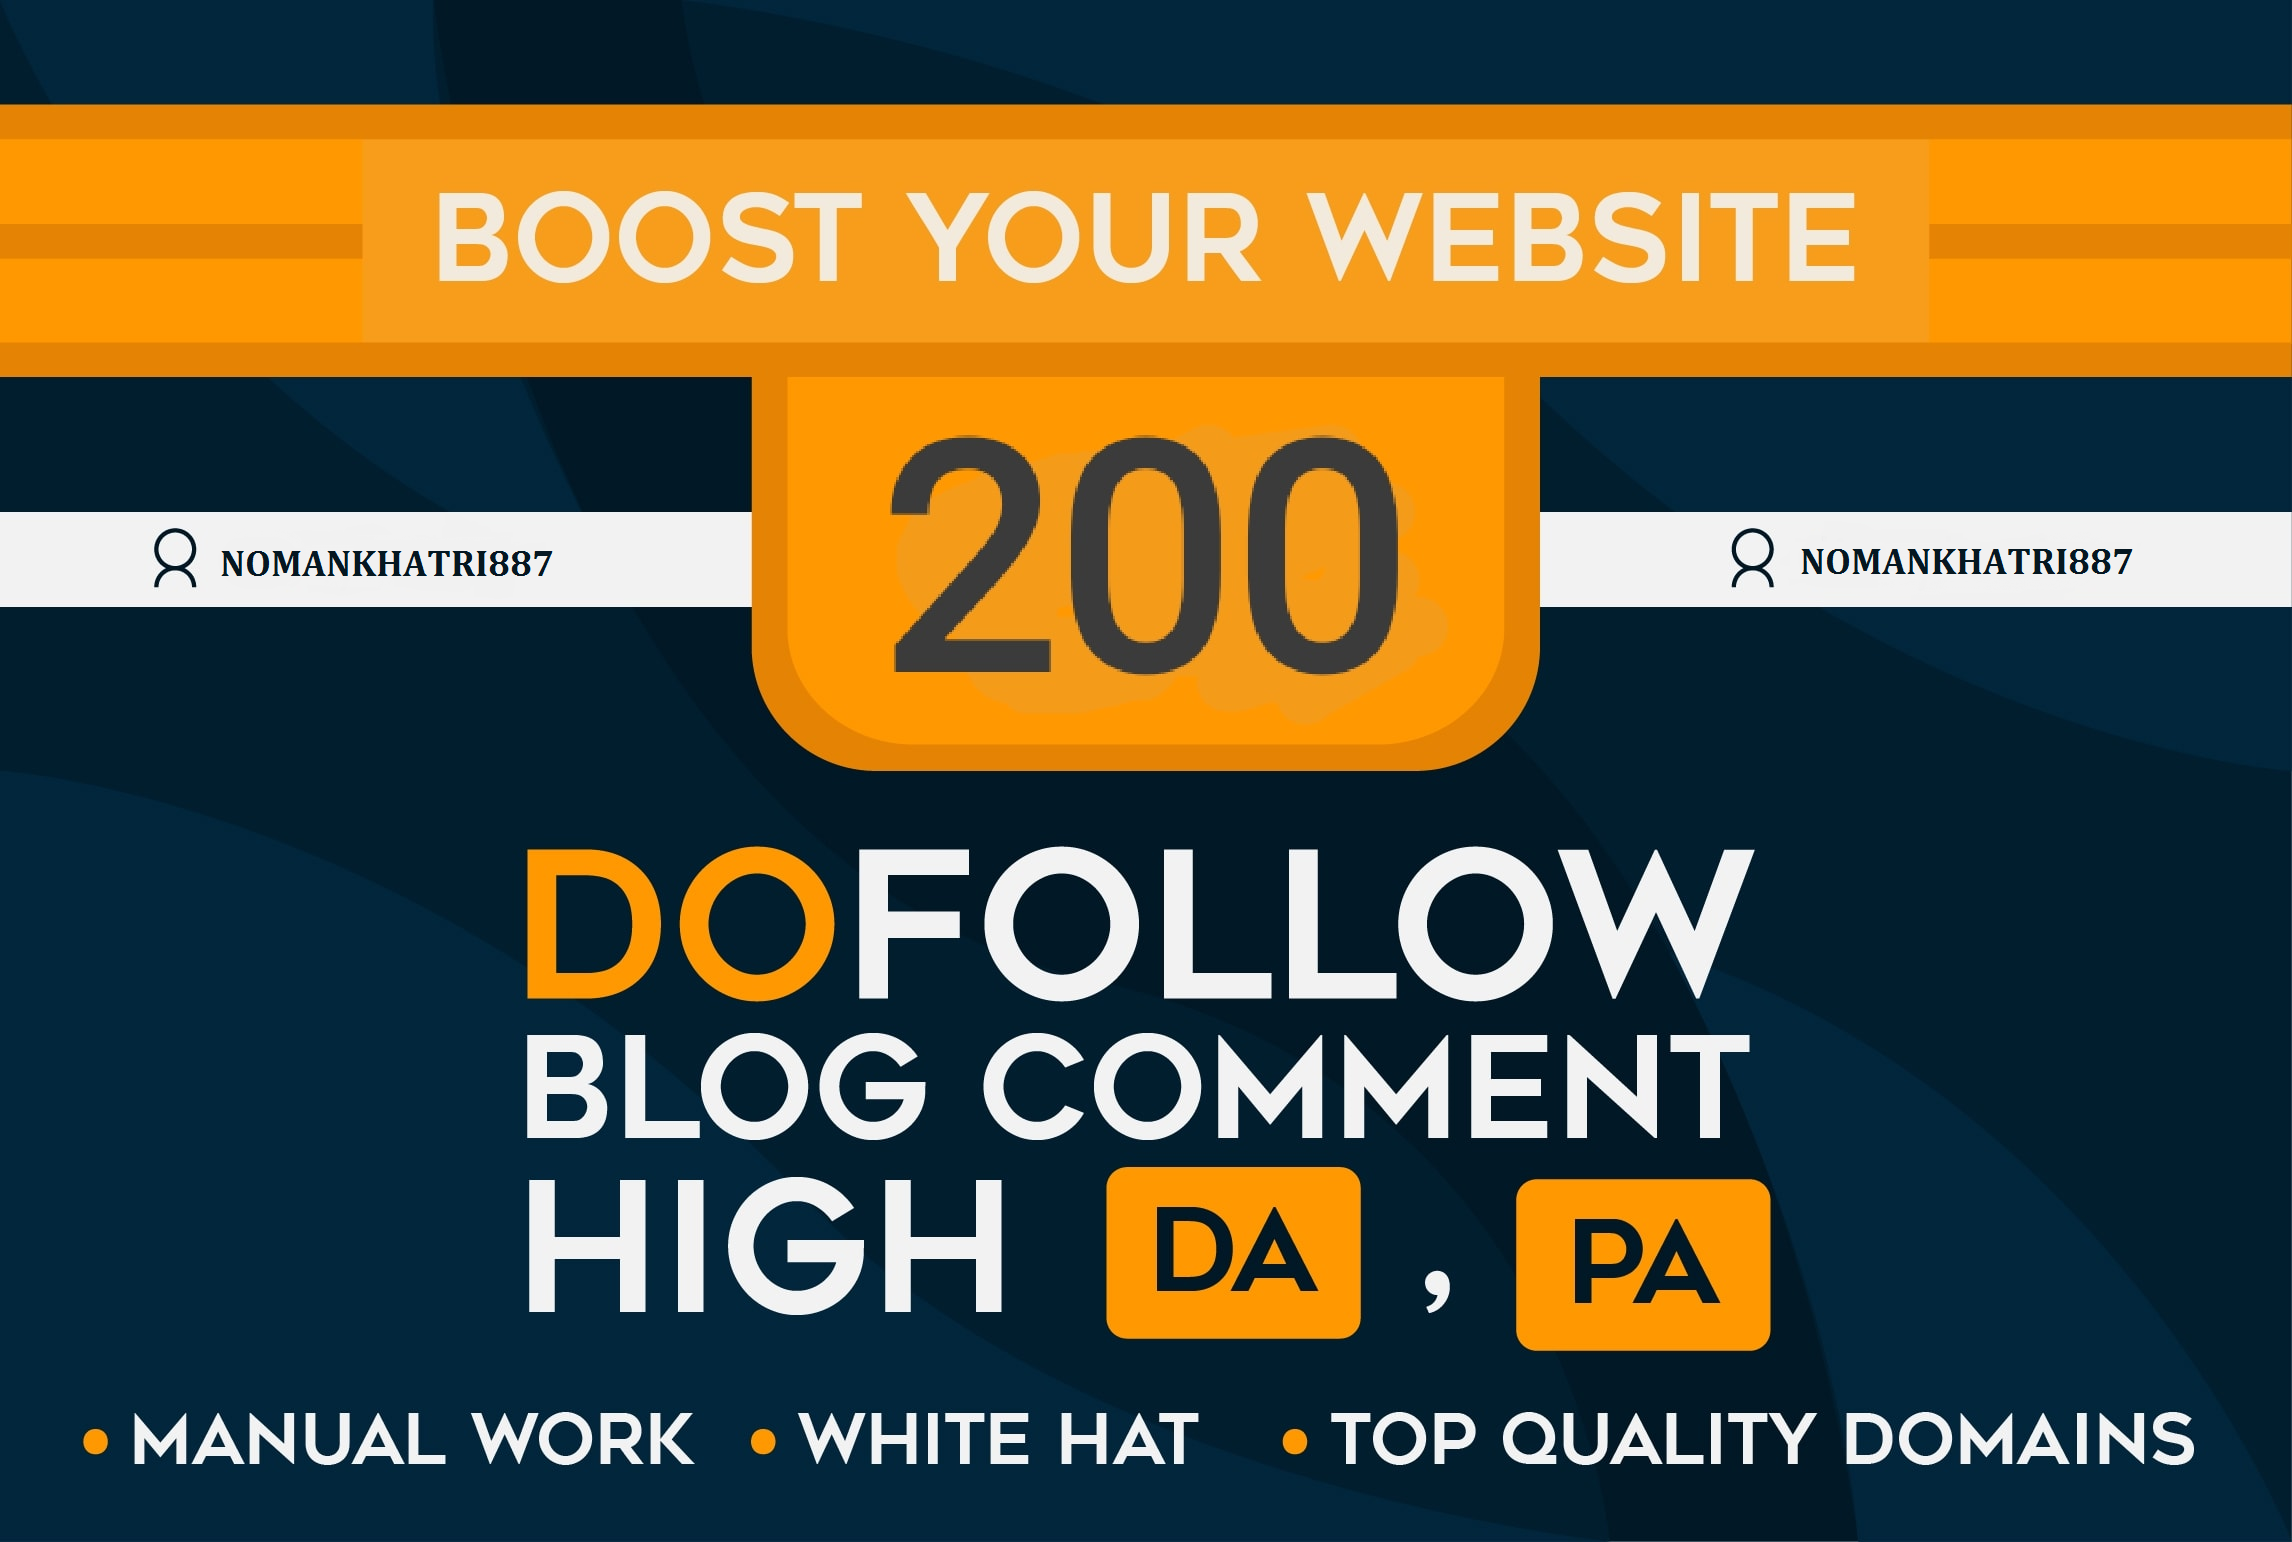 I will 200 blog comments seo backlinks on high da pa